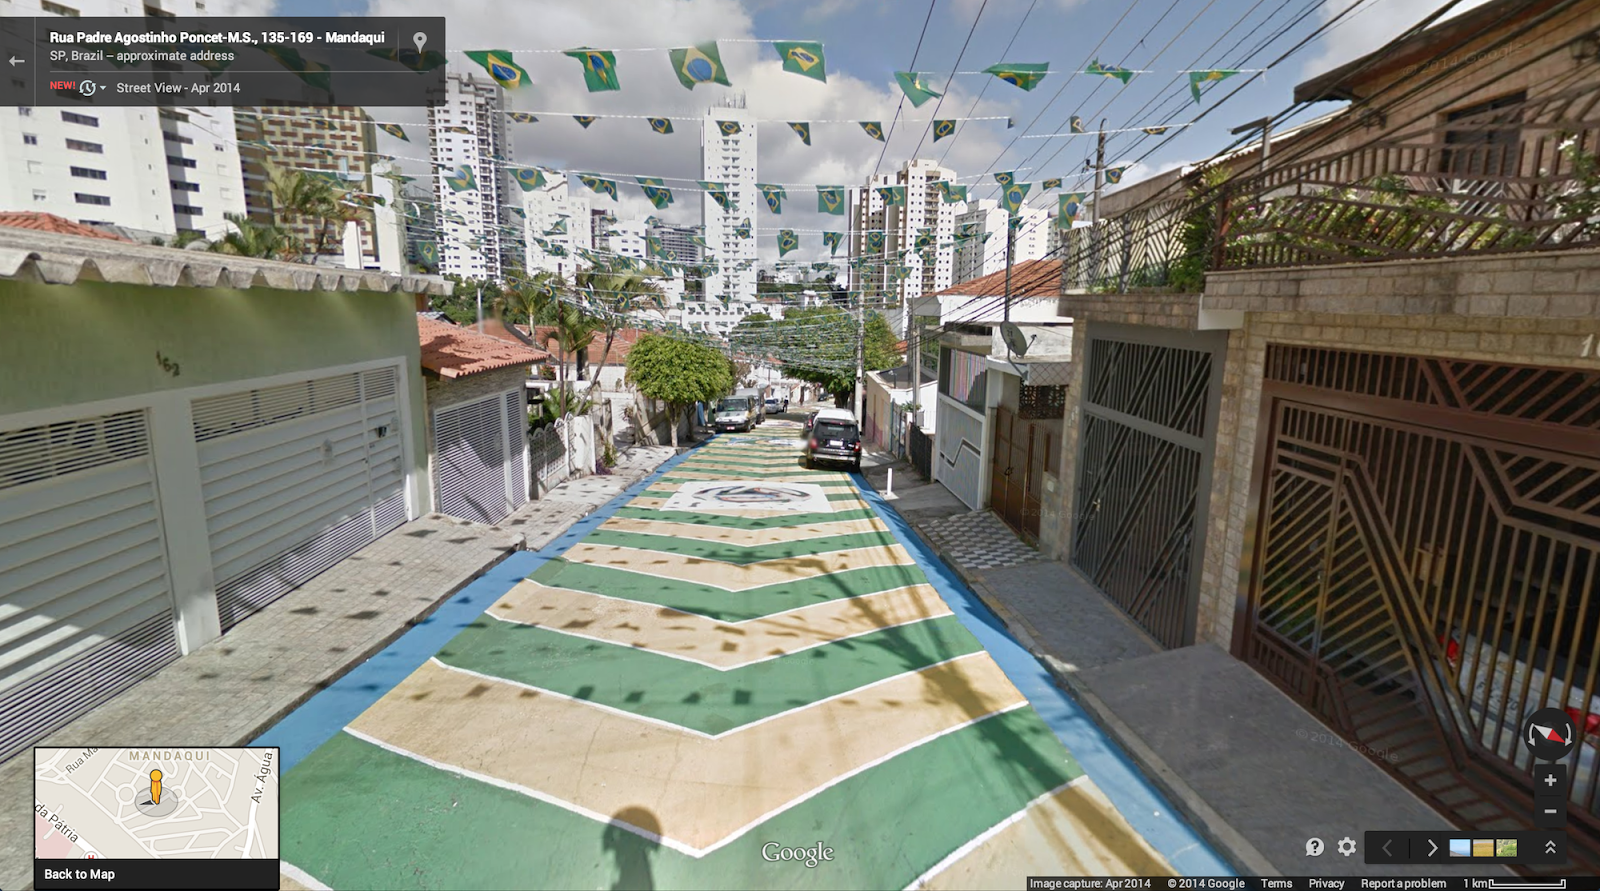 Google adds world cup stadiums to street view you can now explore all 12 fifa world cup stadiums in brazil via google street view gumiabroncs Gallery